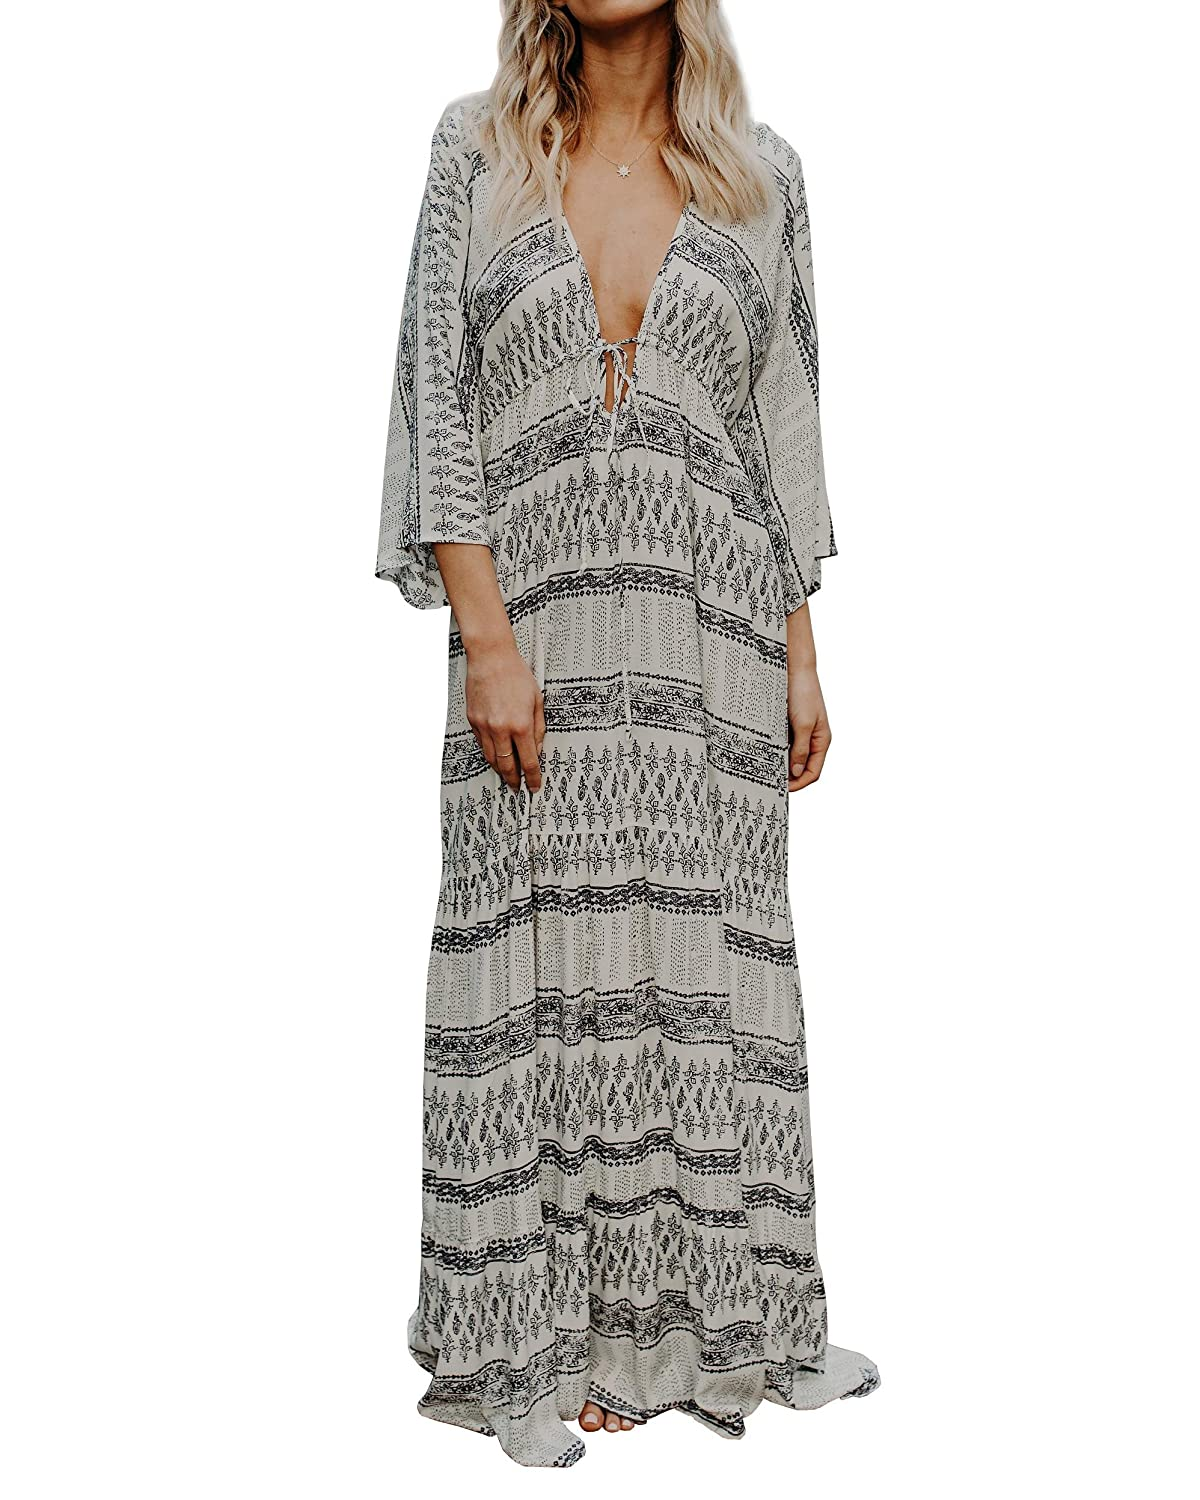 4fe42012a9 Top1  Bbalizko Womens Summer Bohemian Dresses Deep V Neck 3 4 Sleeve  Geometric Maxi Dress